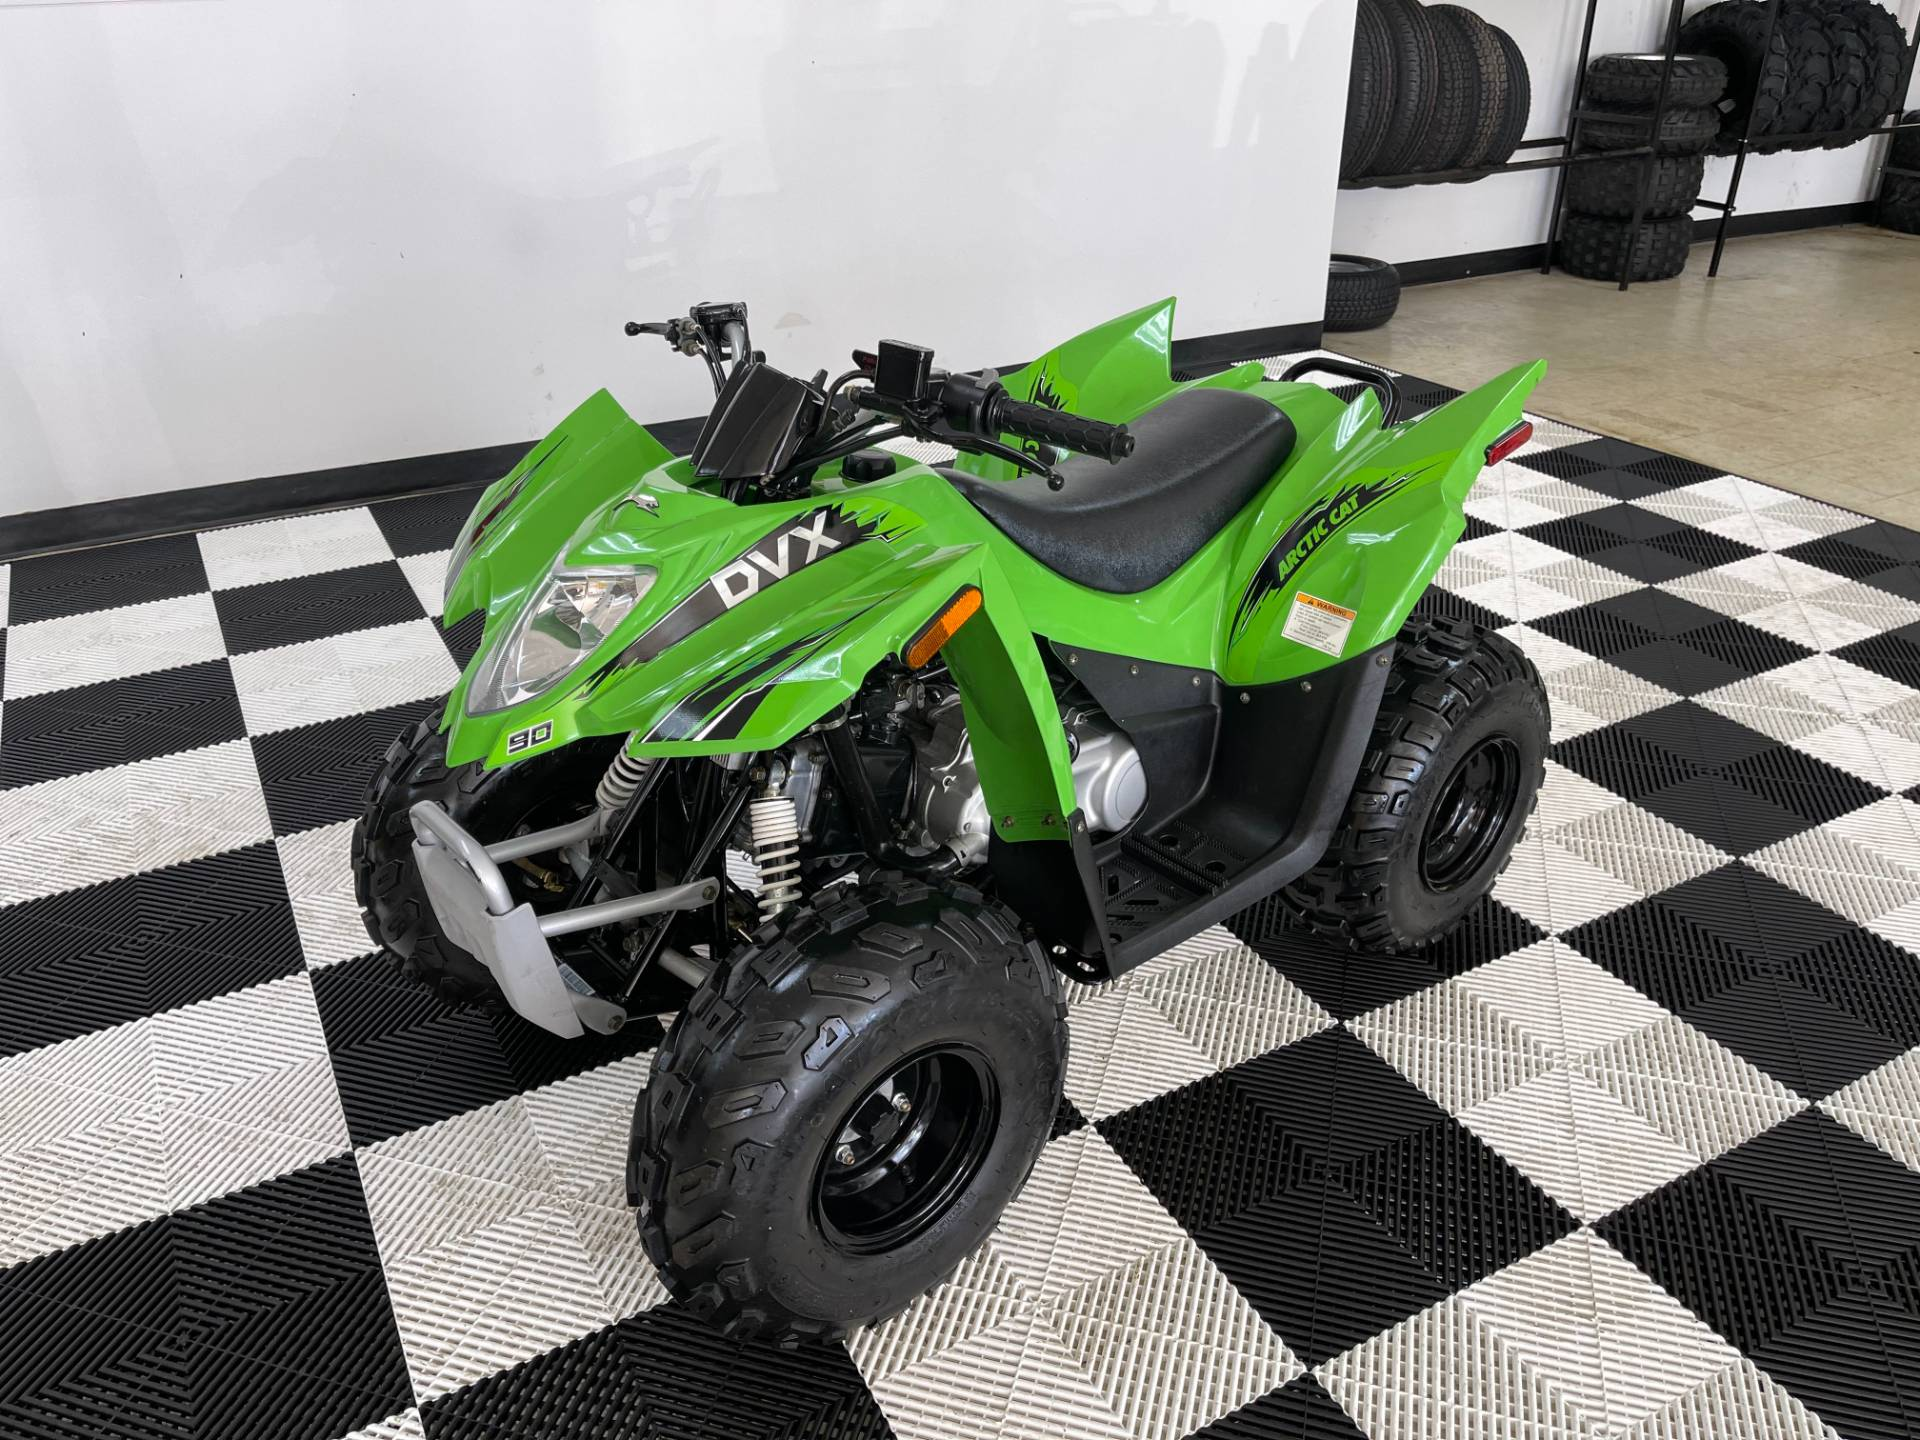 2017 Arctic Cat DVX 90 in Herkimer, New York - Photo 4